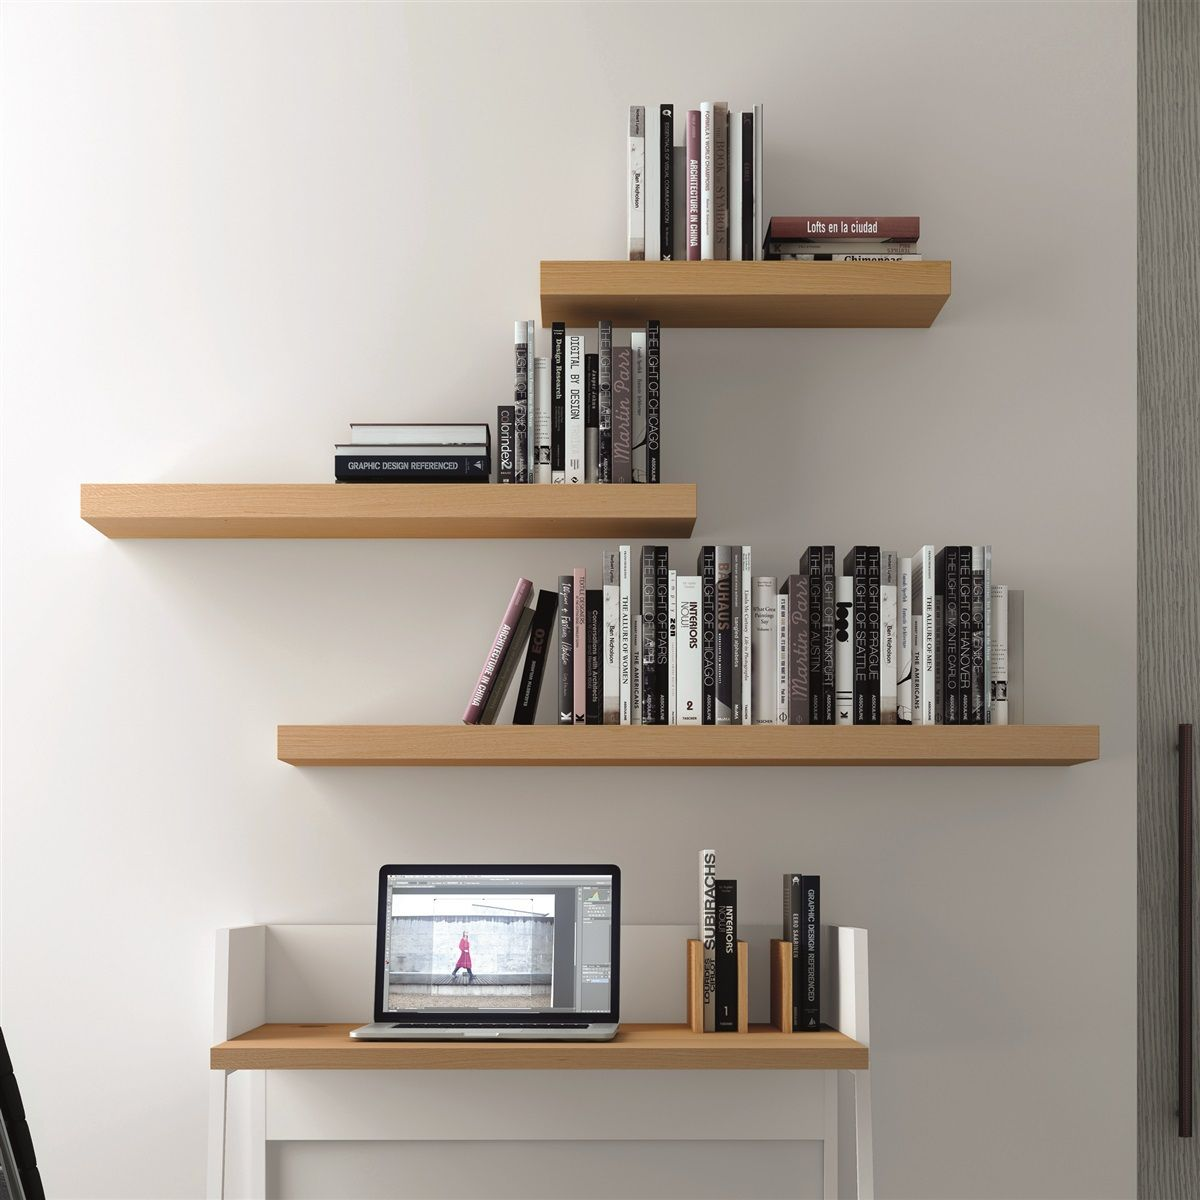 Floating Shelves with books